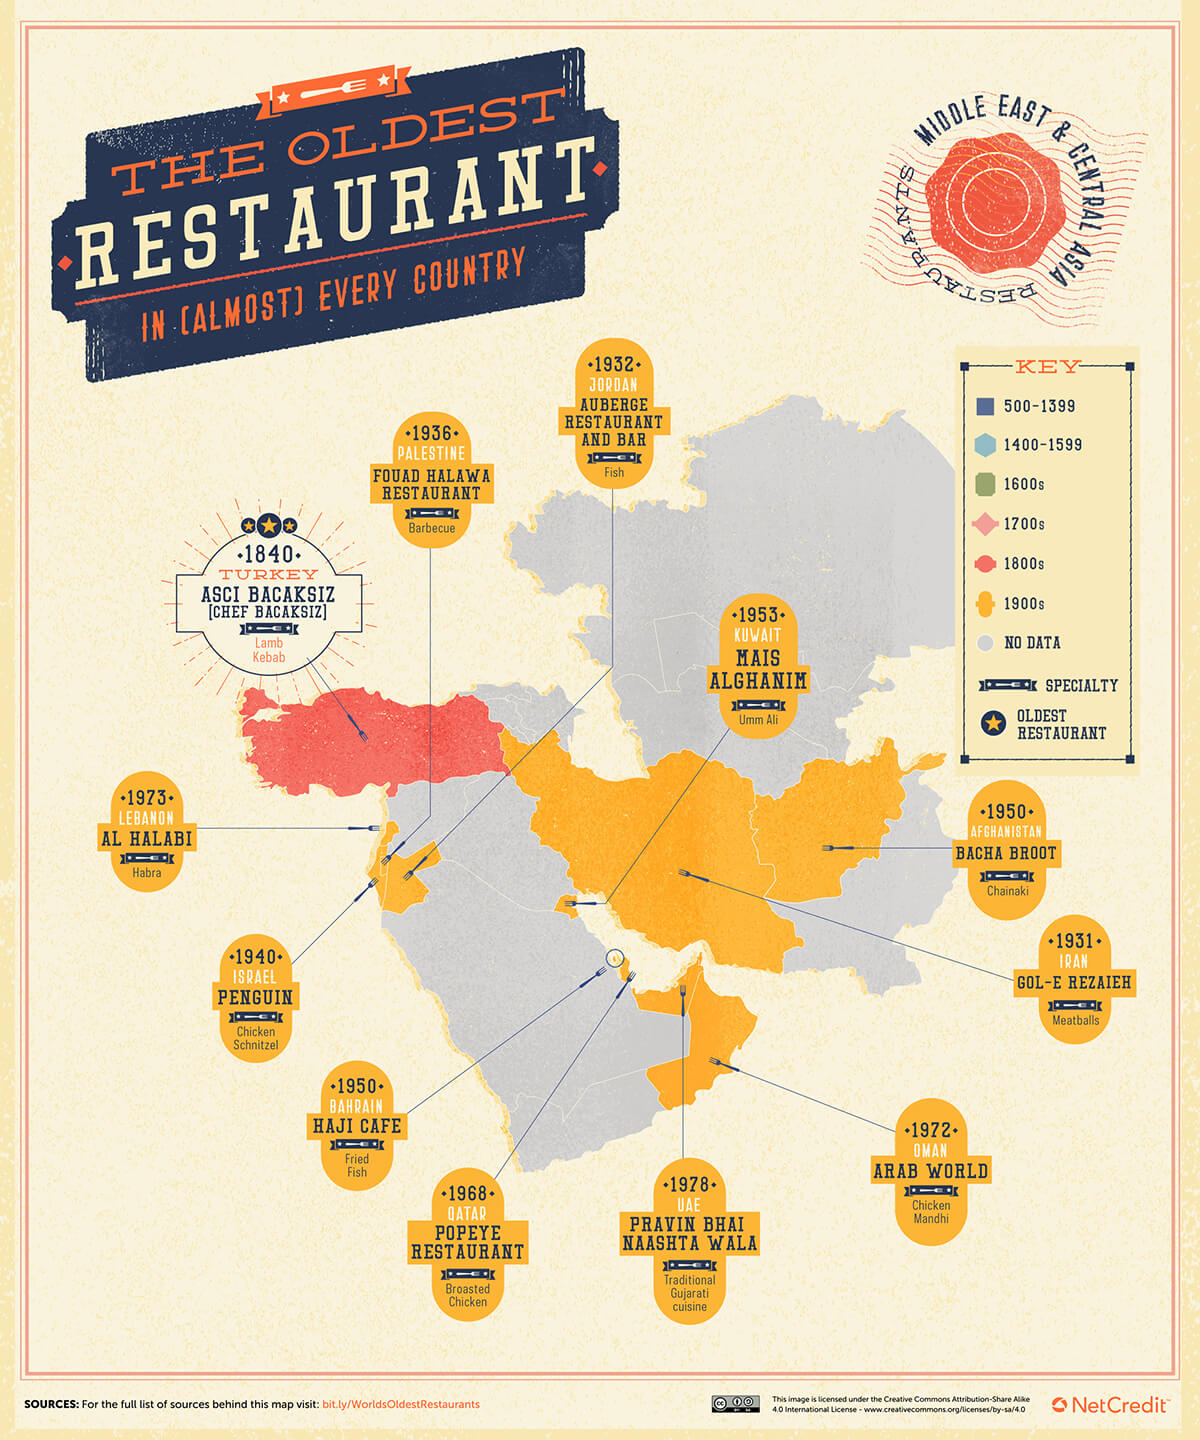 04_The-Oldest-Restaurant-in-Almost-Every-Country_MiddleEastCentralAsia